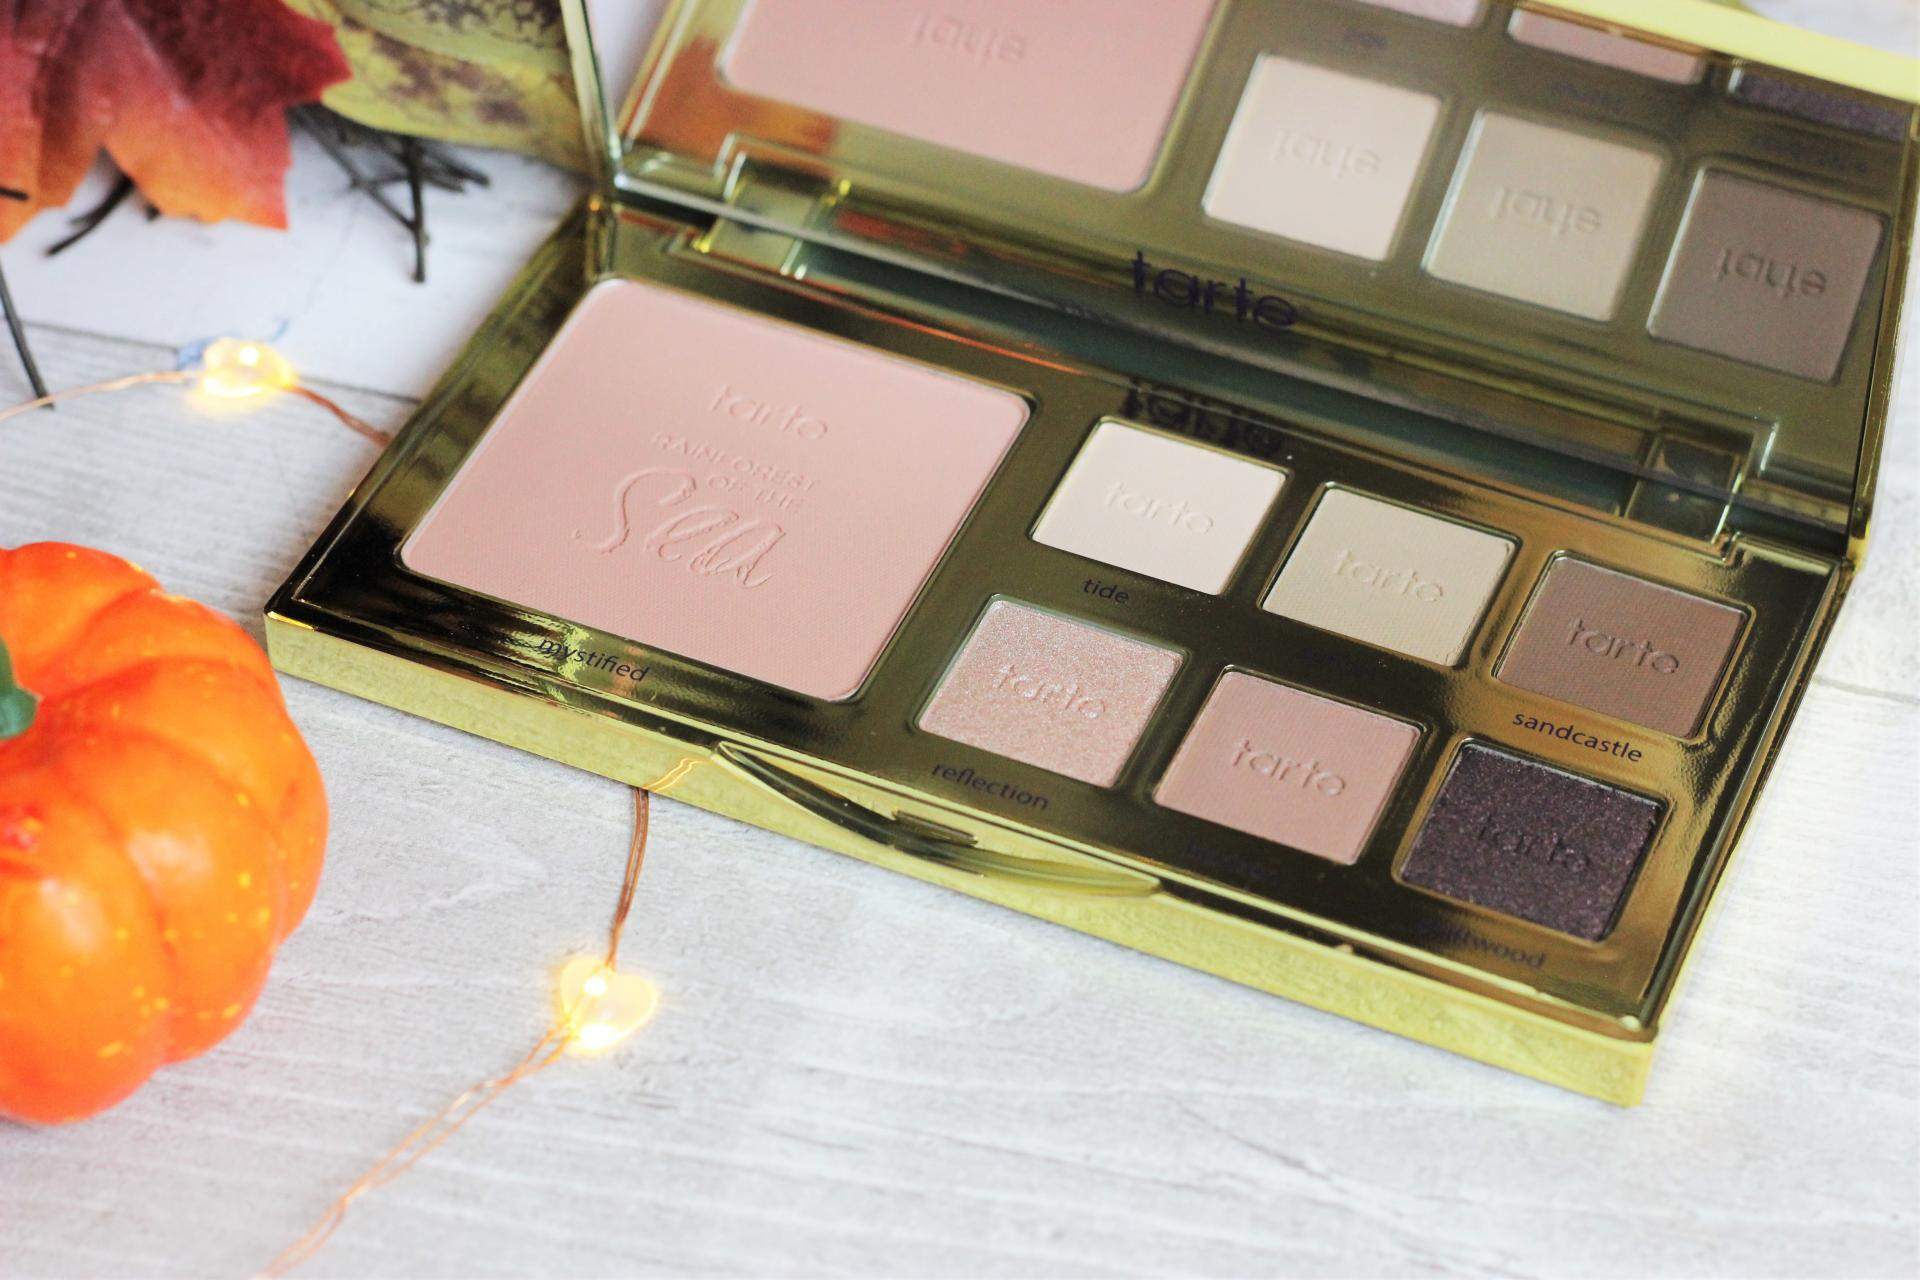 Tarte Radiance from The Rainforest Collection